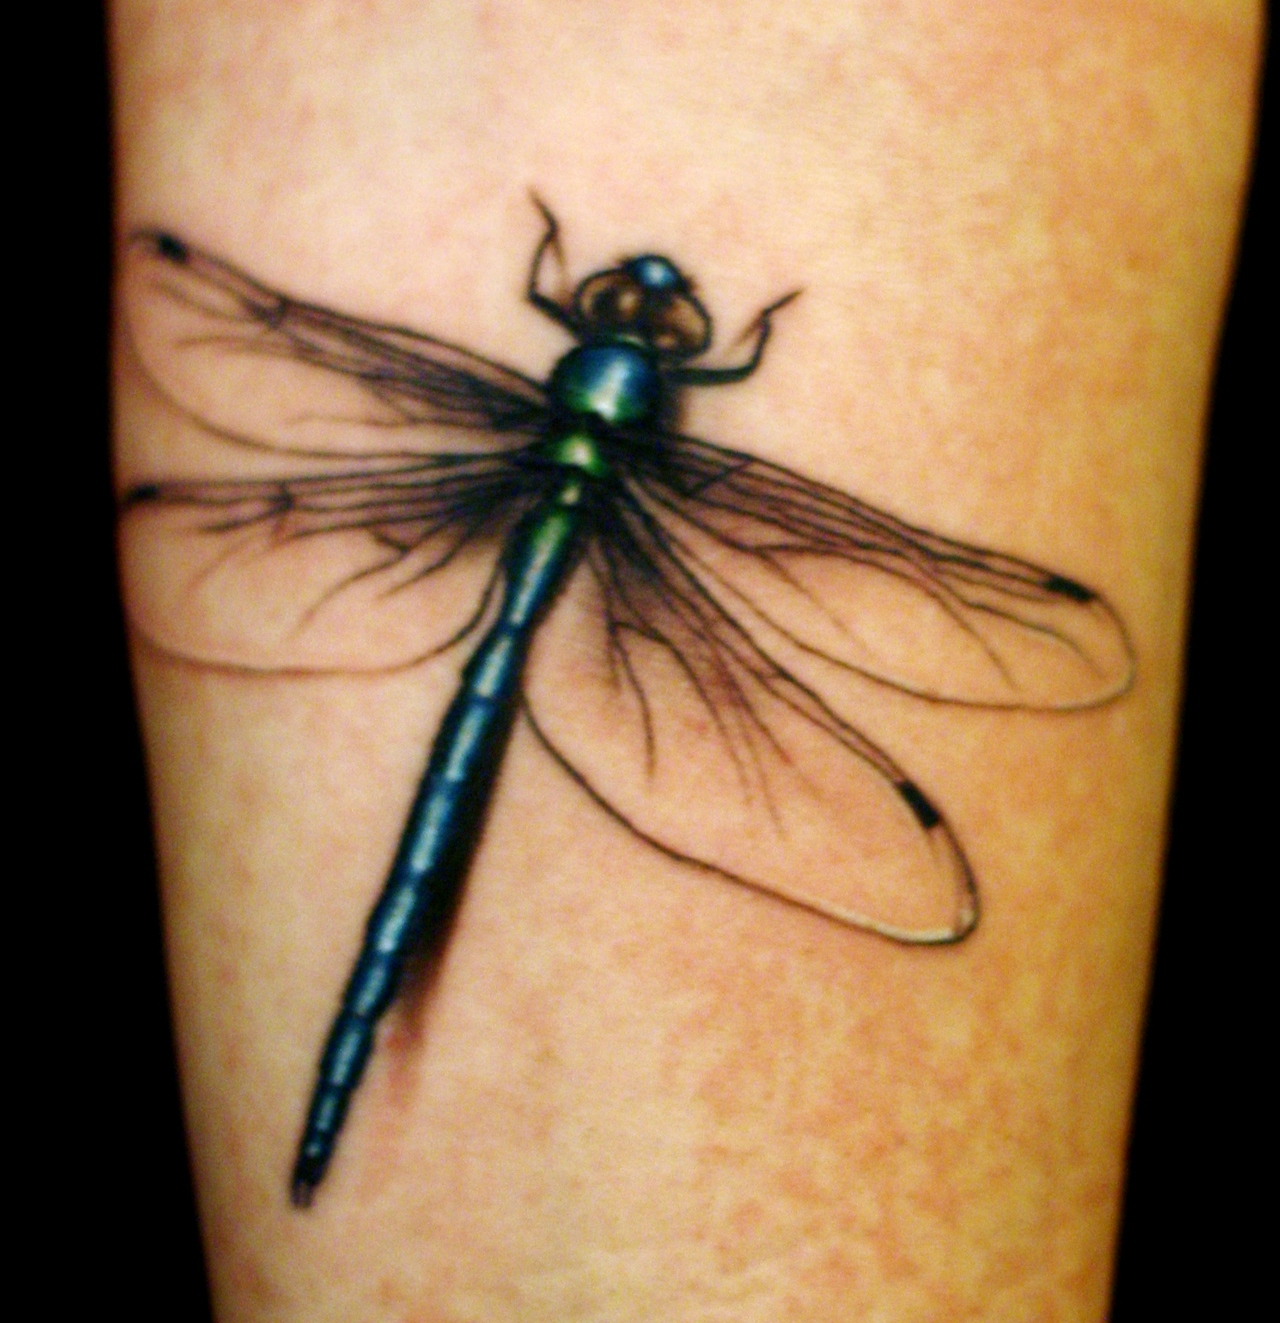 Tattoo Browse Determine Some Good Dragonfly Tattoo Designs As We Speak